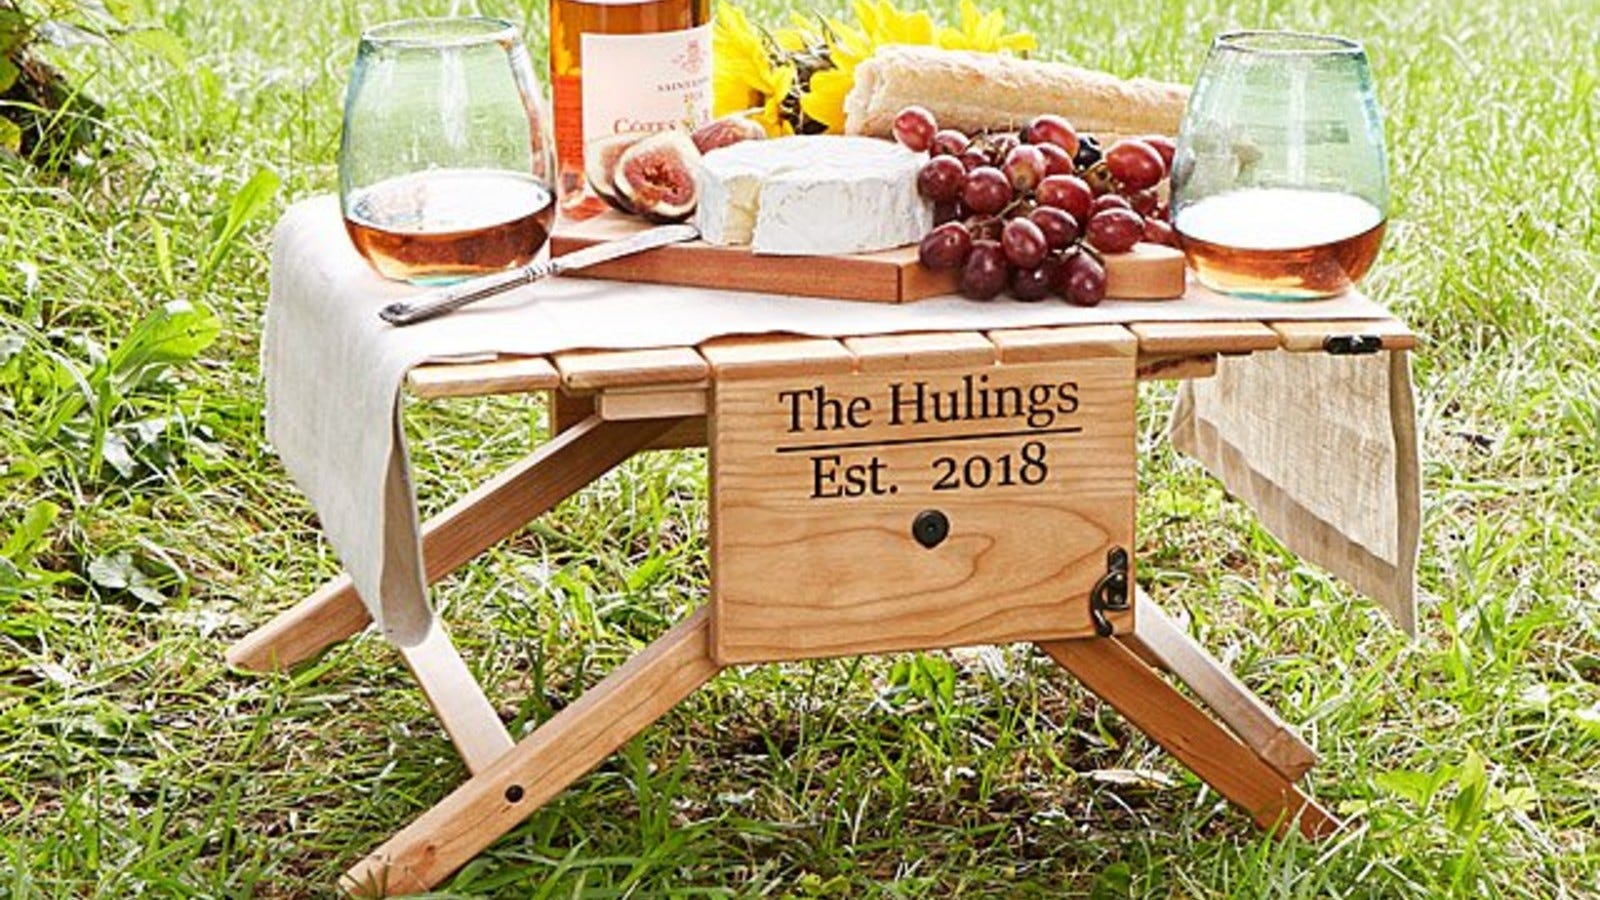 Wine, cheese, and grapes on Uncommon Goods' Personalized Picnic Table.